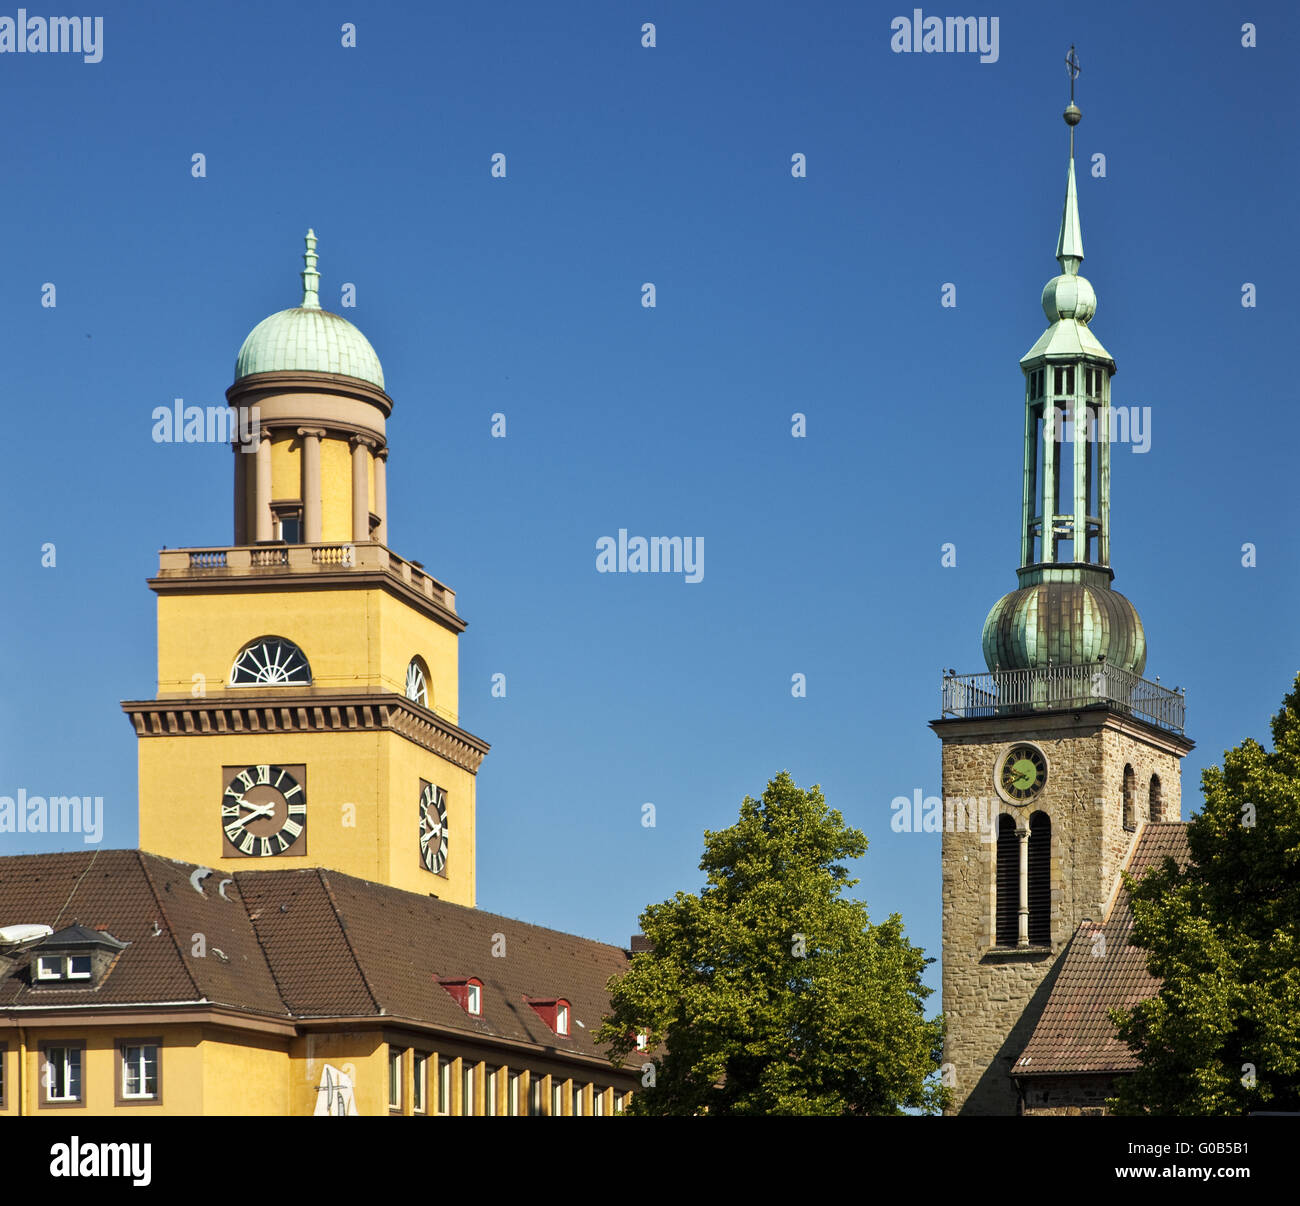 City Hall tower with St. John's Church, Witten - Stock Image